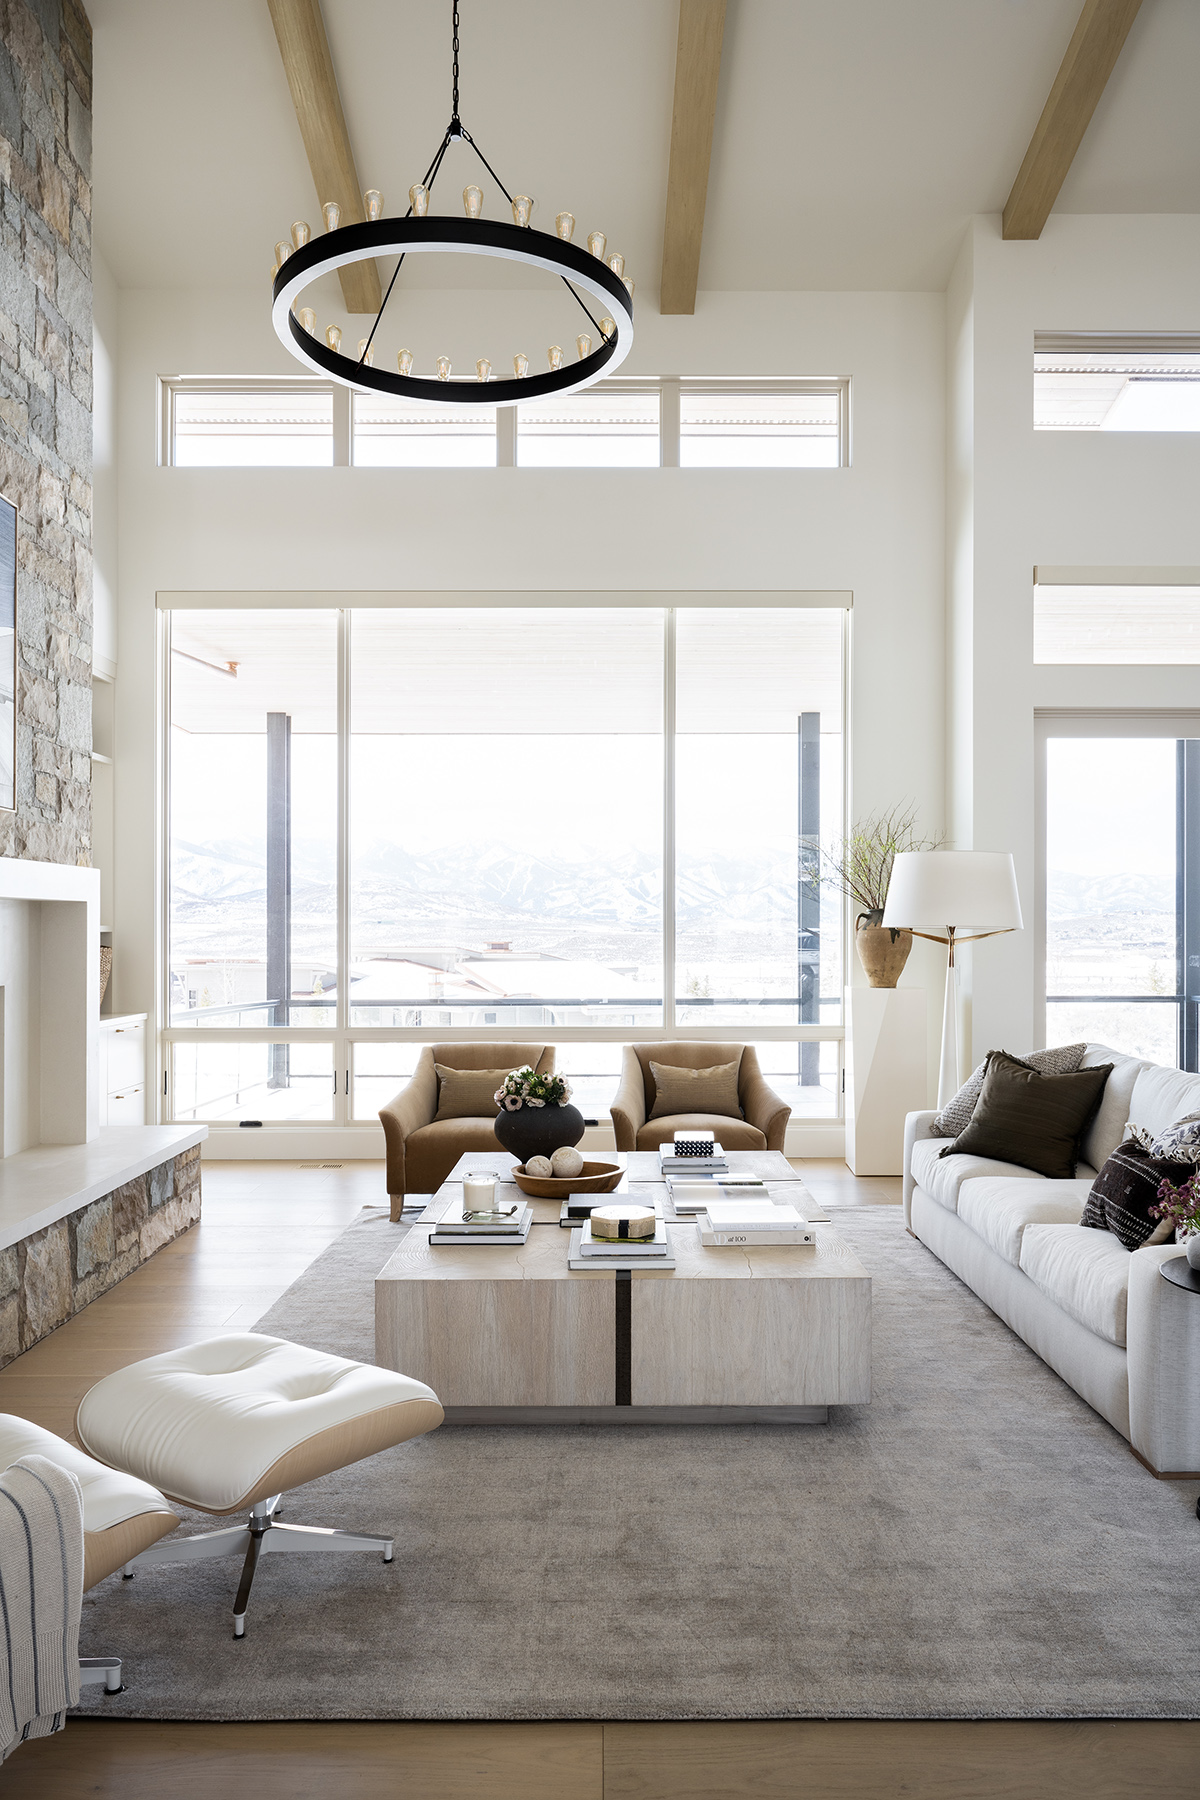 PC Contemporary Project: The Great Room